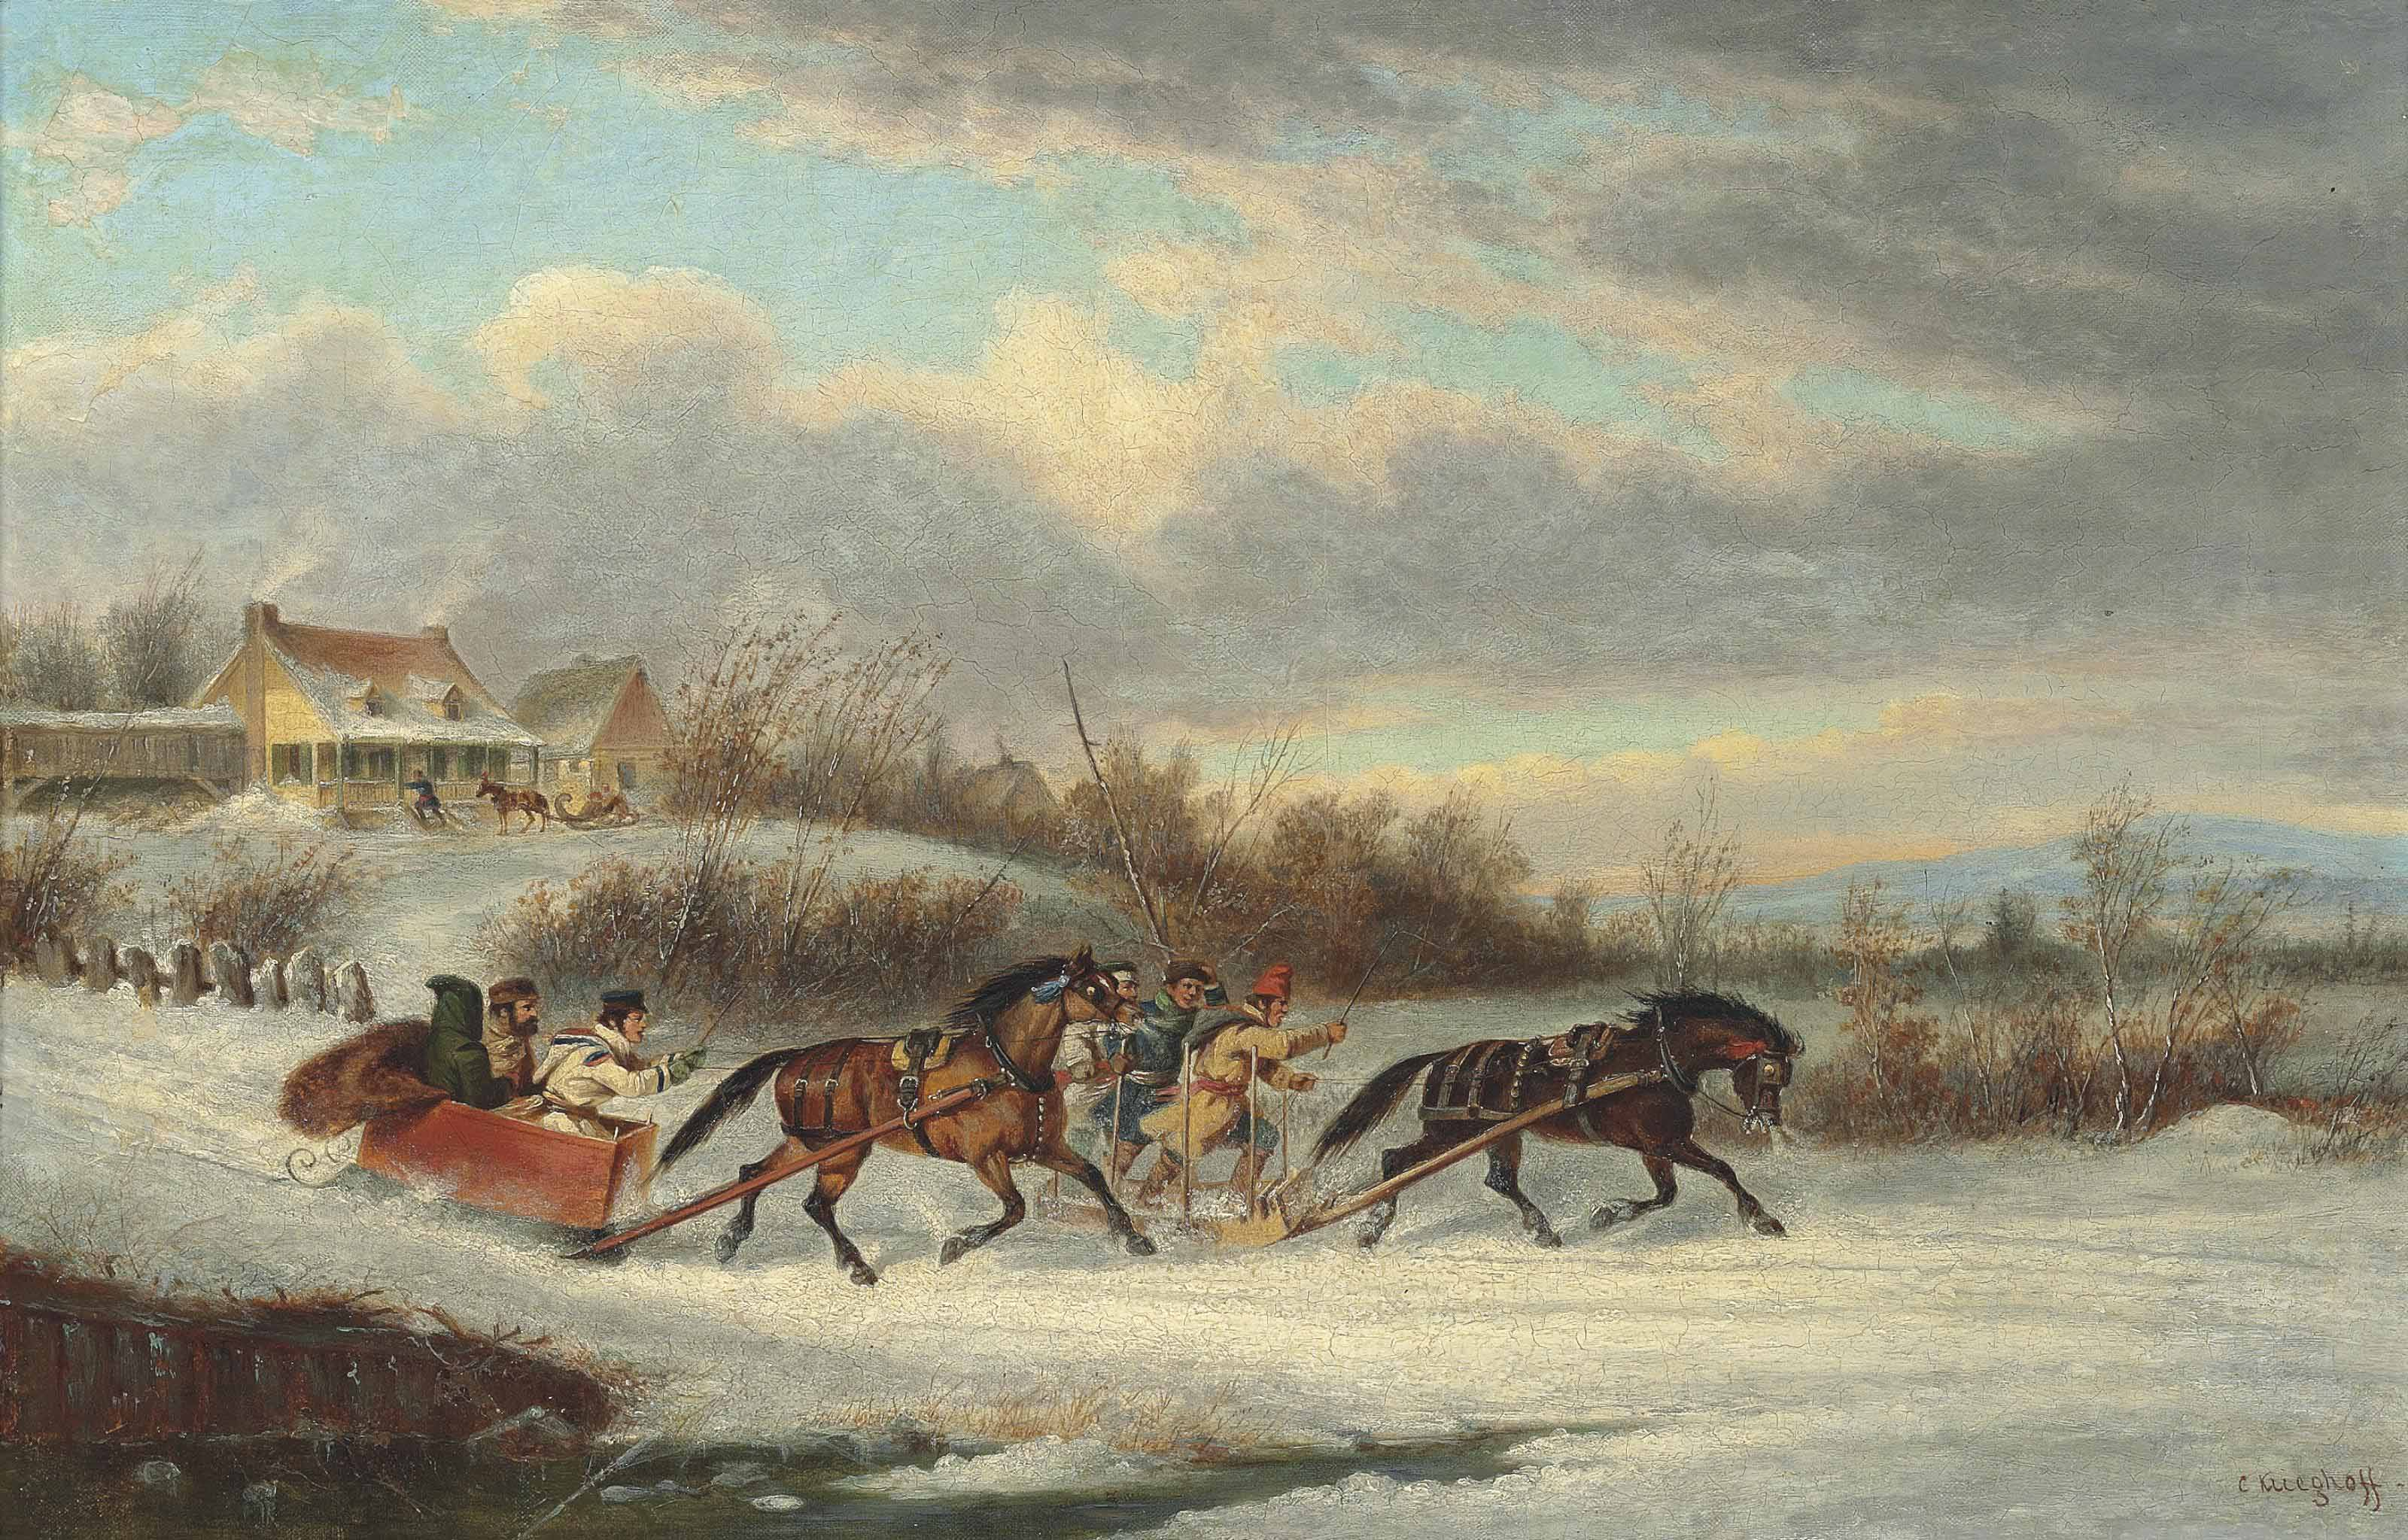 The Sleigh Race, Quebec, 1856